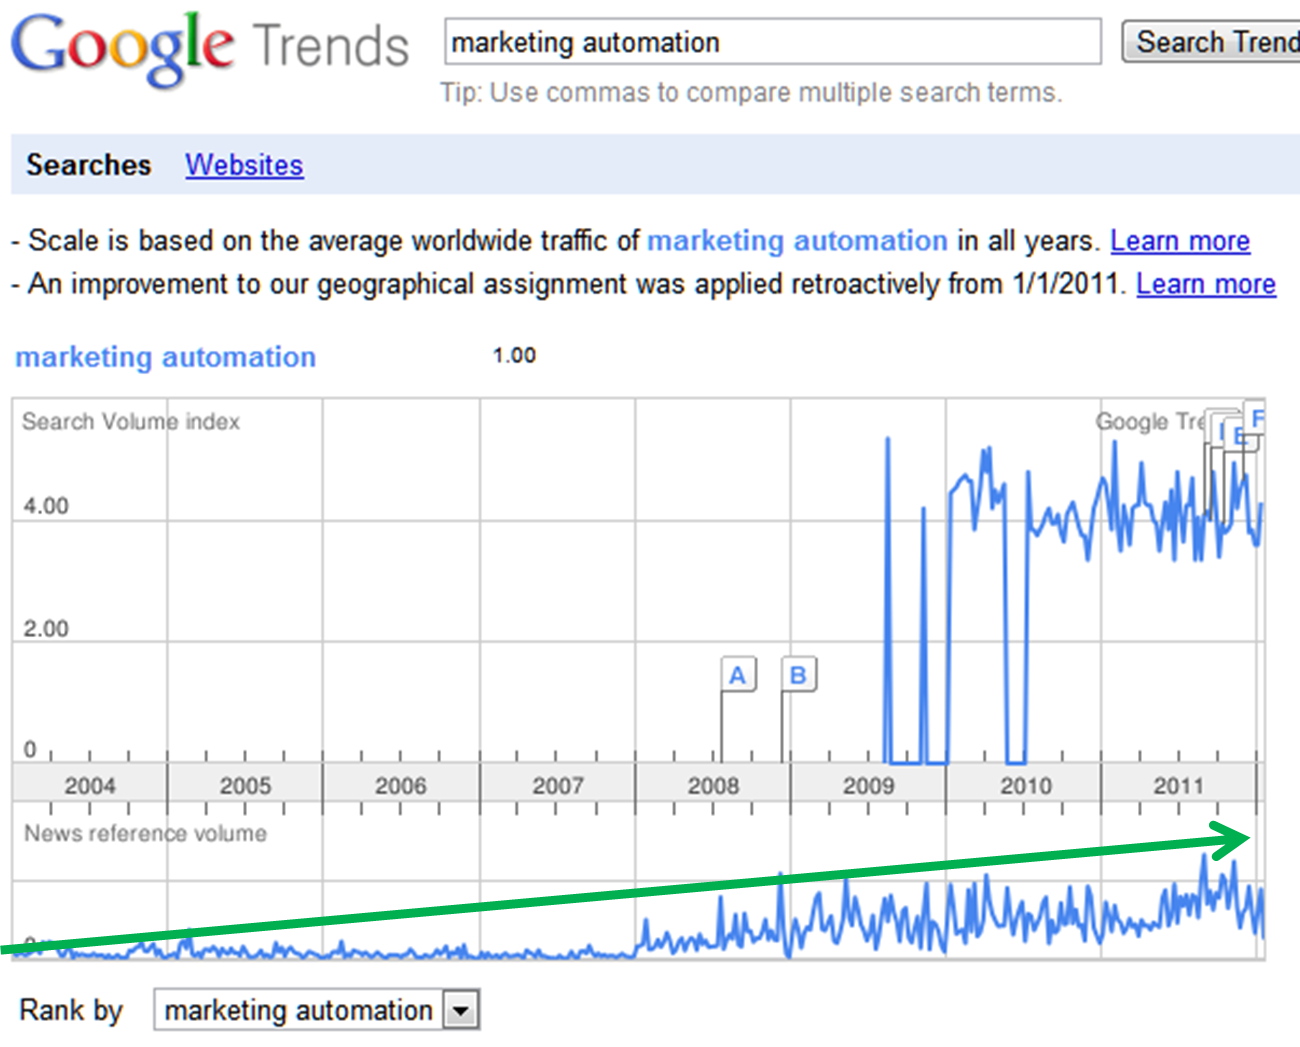 Marketing Automation Search Trends